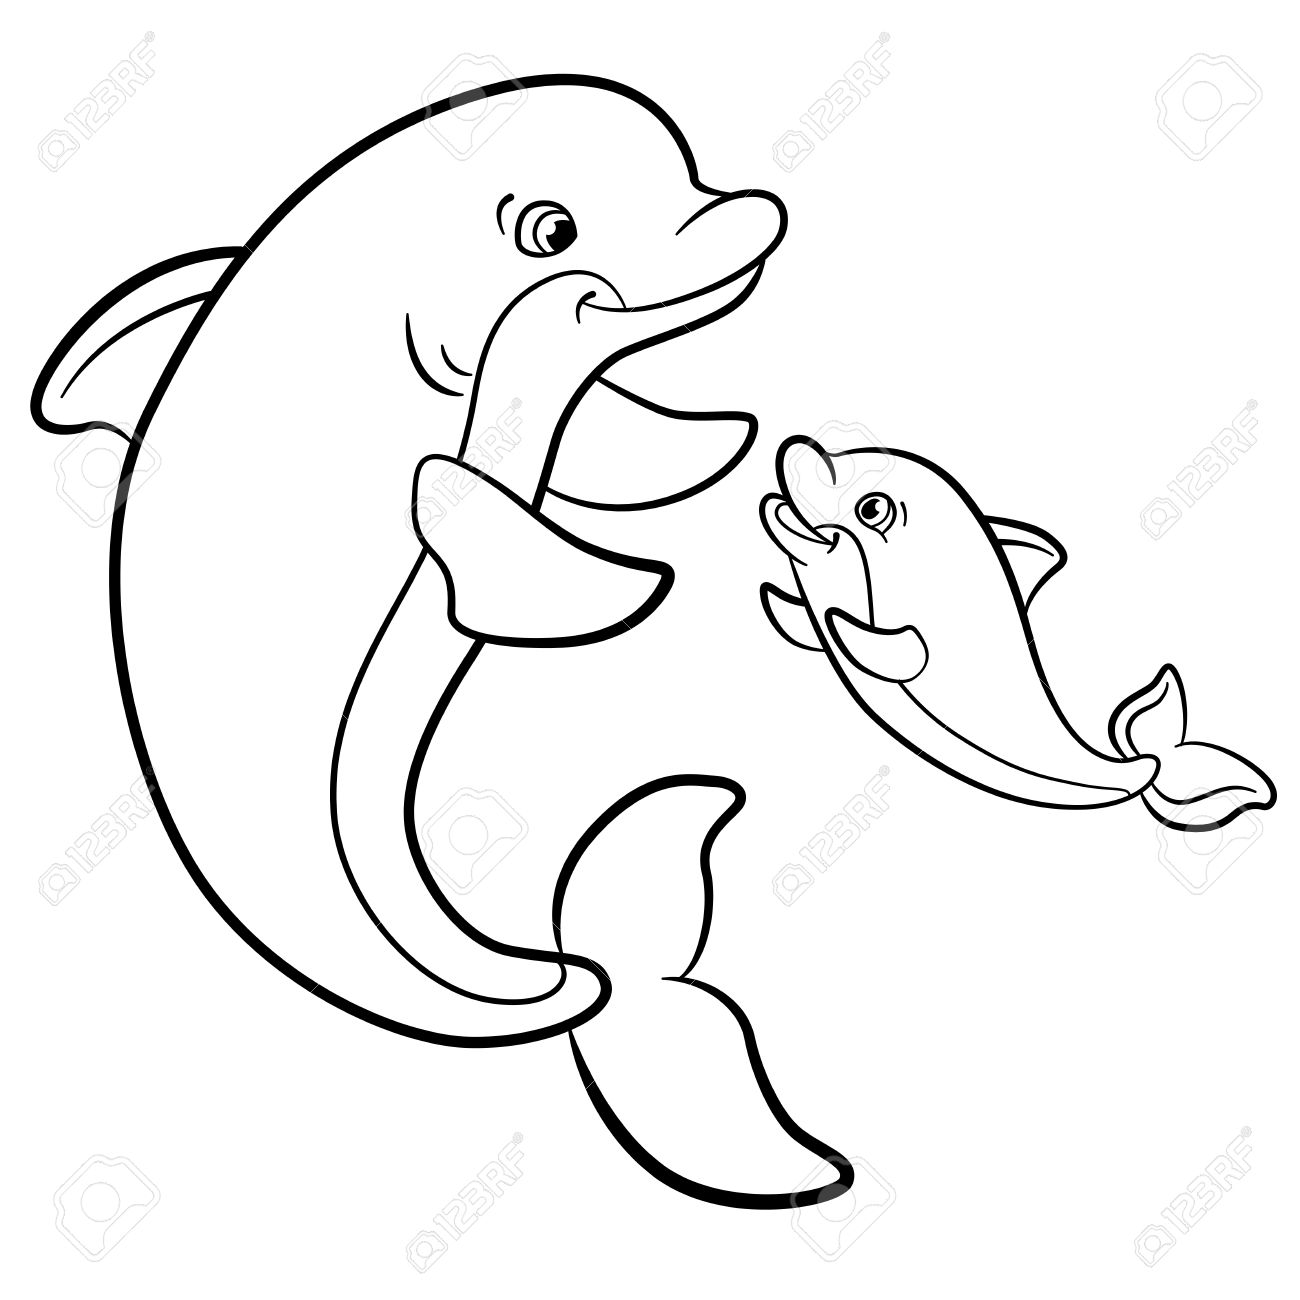 Coloriage Petit Dauphin.Coloriage Les Animaux Marins Sauvages Mere Dauphin Nage Avec Son